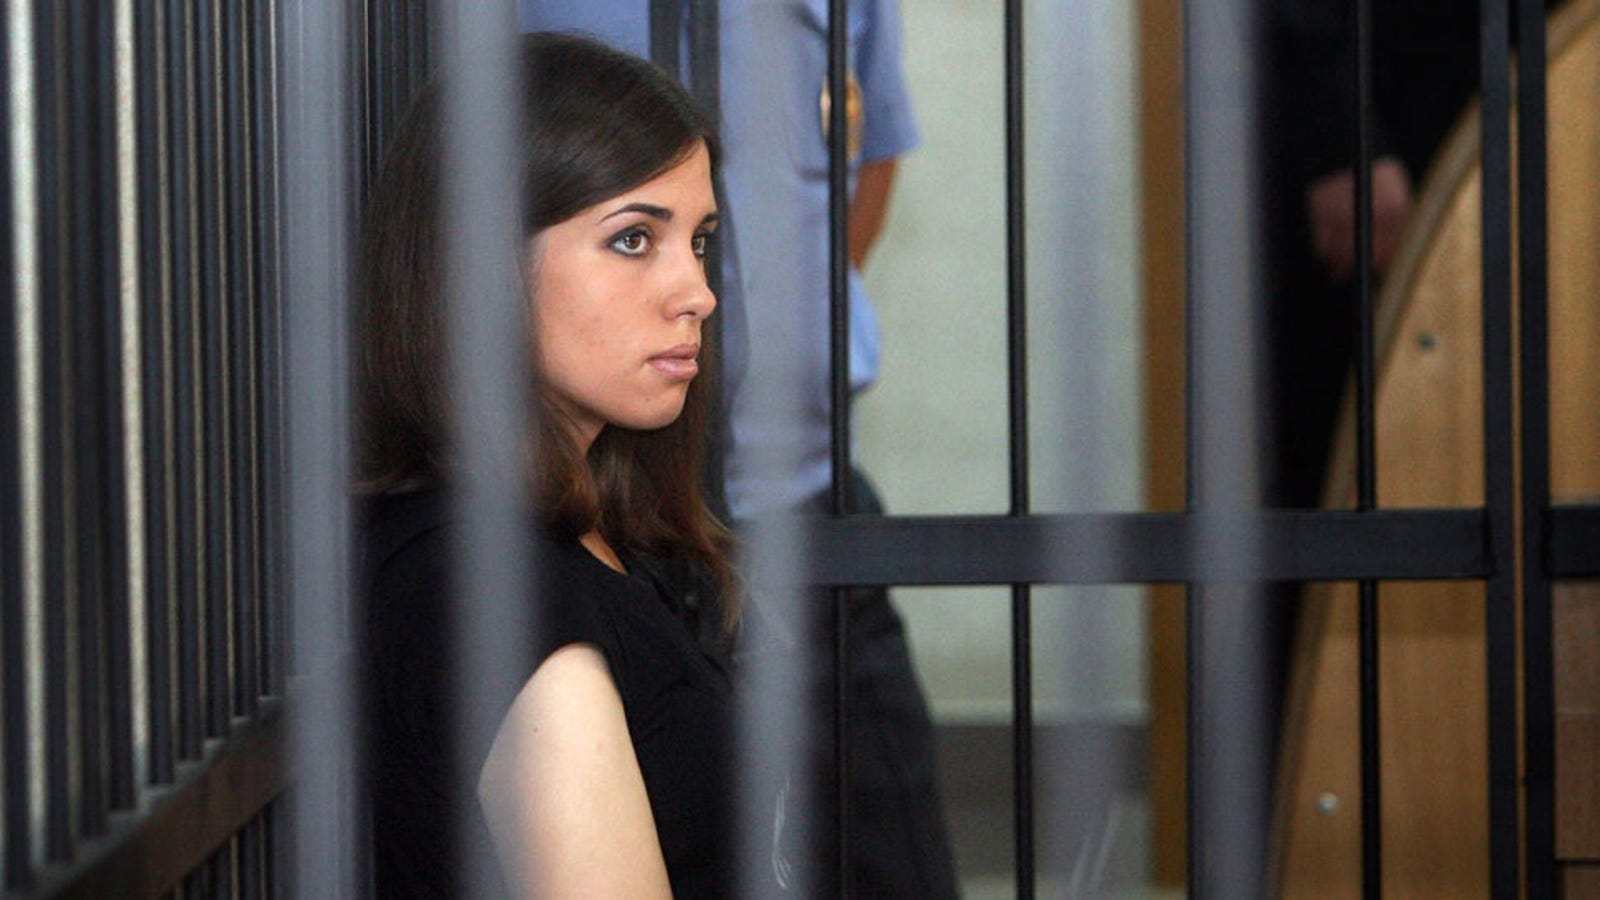 Tolokonnikova went on a hunger strike and transferred to the ShIZO 24.09.2013 40